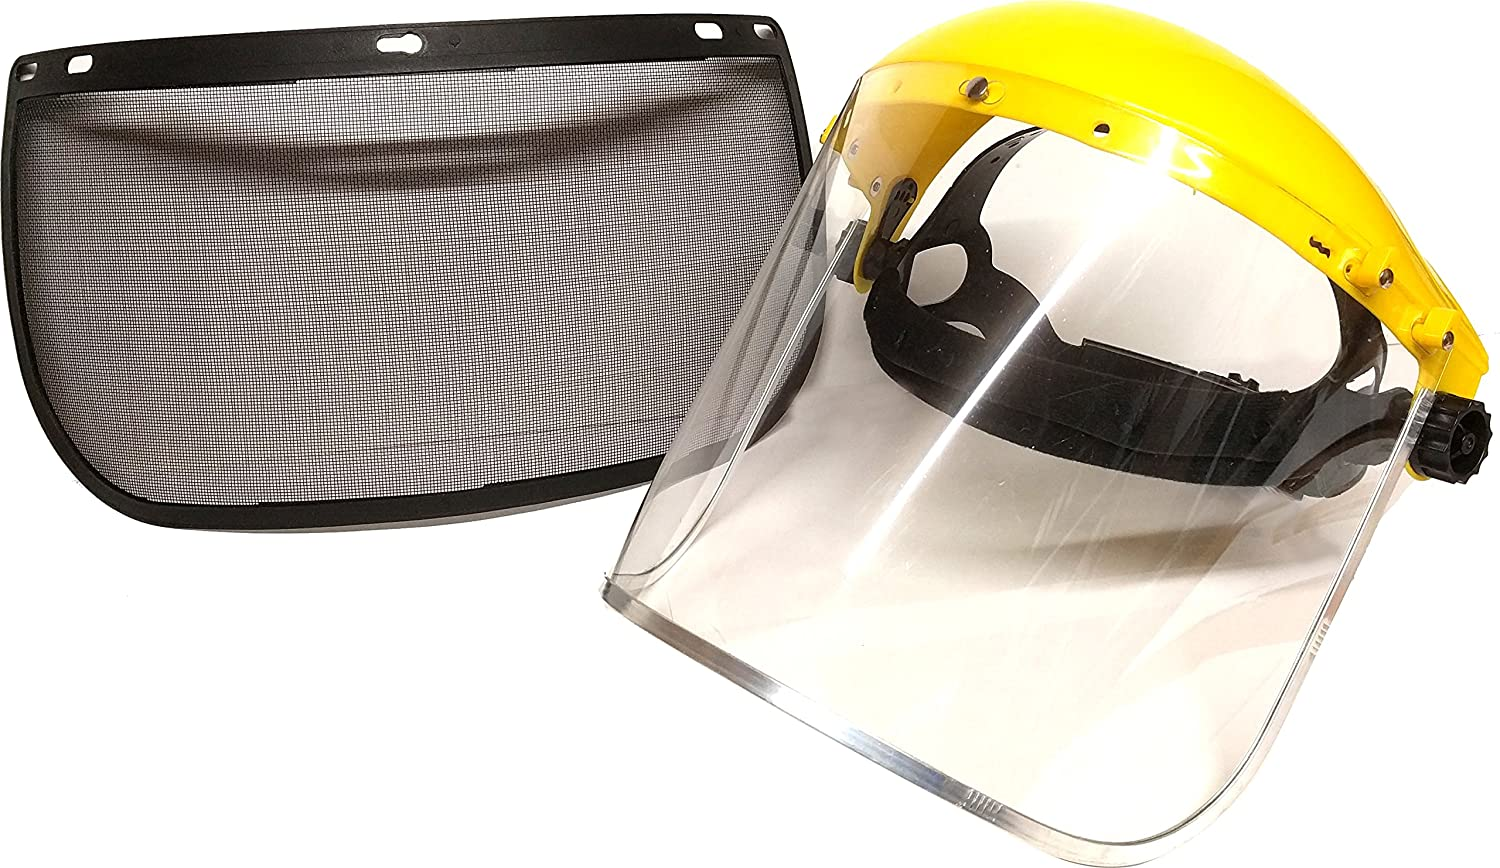 ESENO Industrial Safety Face Shield and Wide Visor /… Replacement Clear Visor x 2